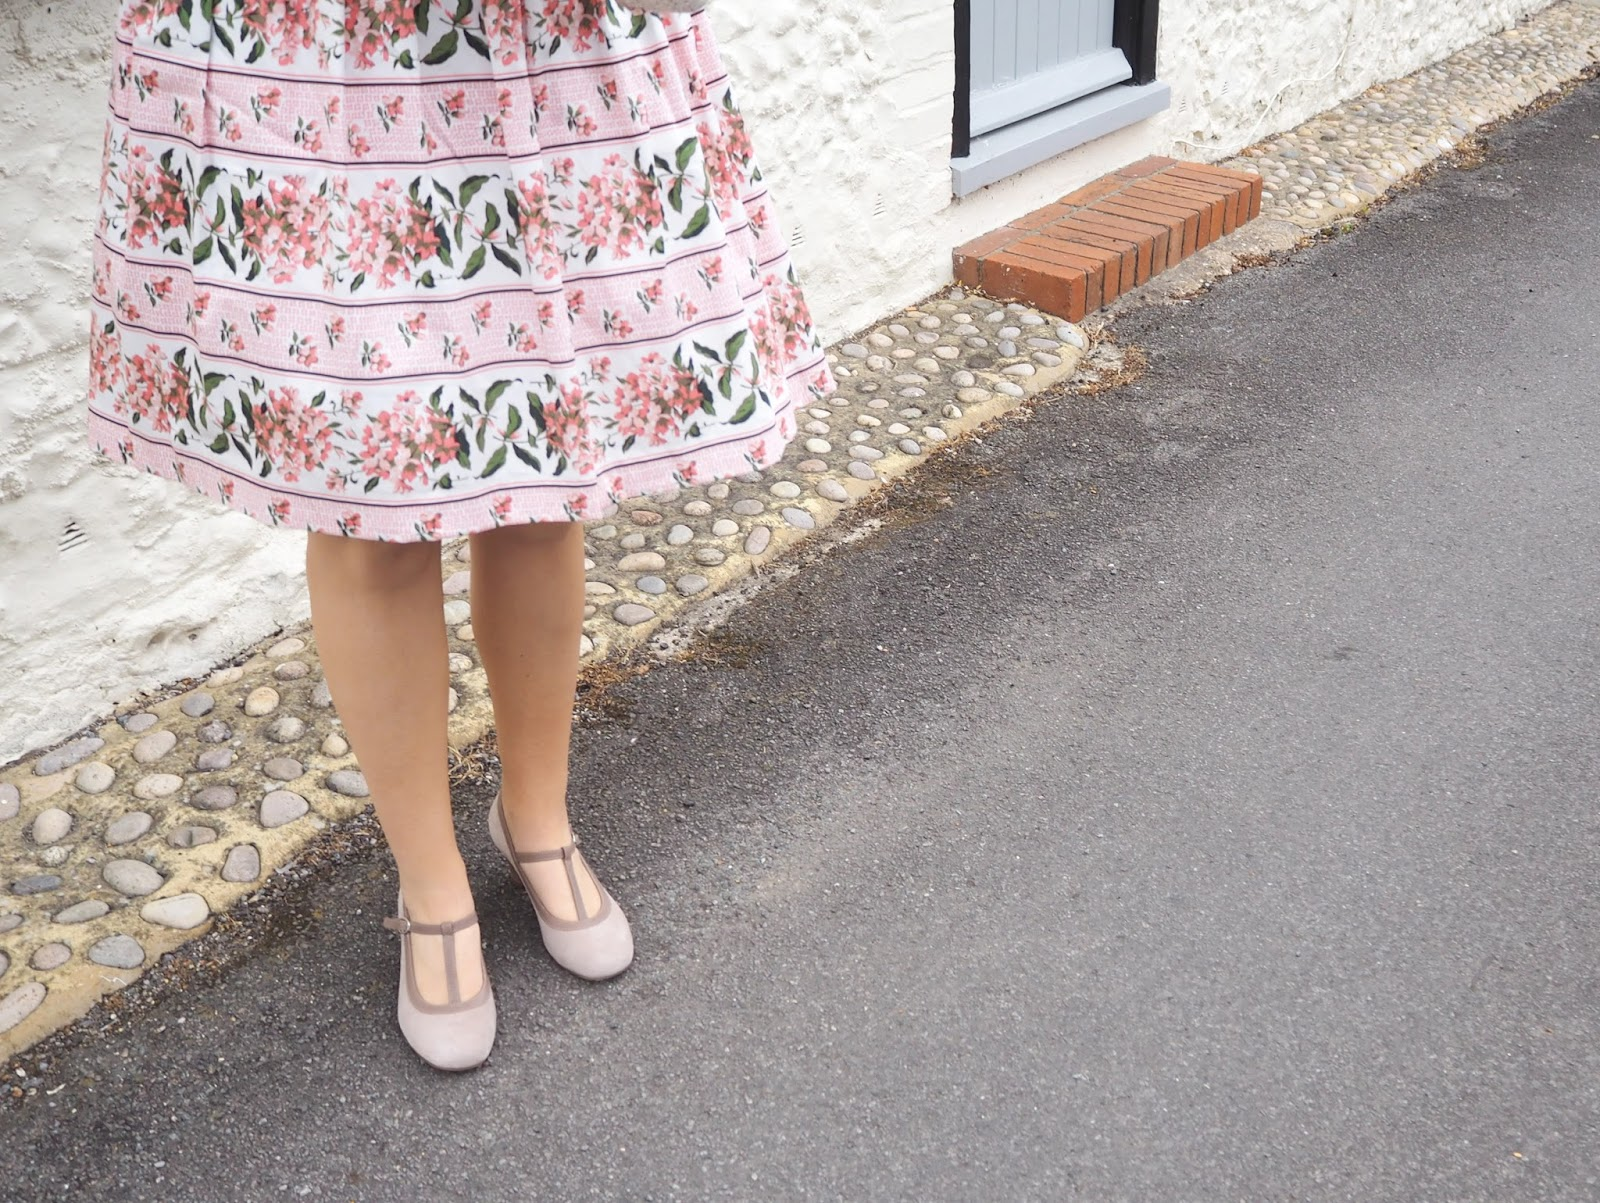 Wedding Guest Outfit Ideas, Katie Kirk Loves, UK Blogger, Wedding Outfit, Oasis Fashion, Pink Princess Dress, Hotter Shoes, Comfortable Heels, Fashion Blogger, Outfit Blogger, Style Blogger, Fashion Influencer, Style Influencer, Wedding Inspiration, Wedding Style